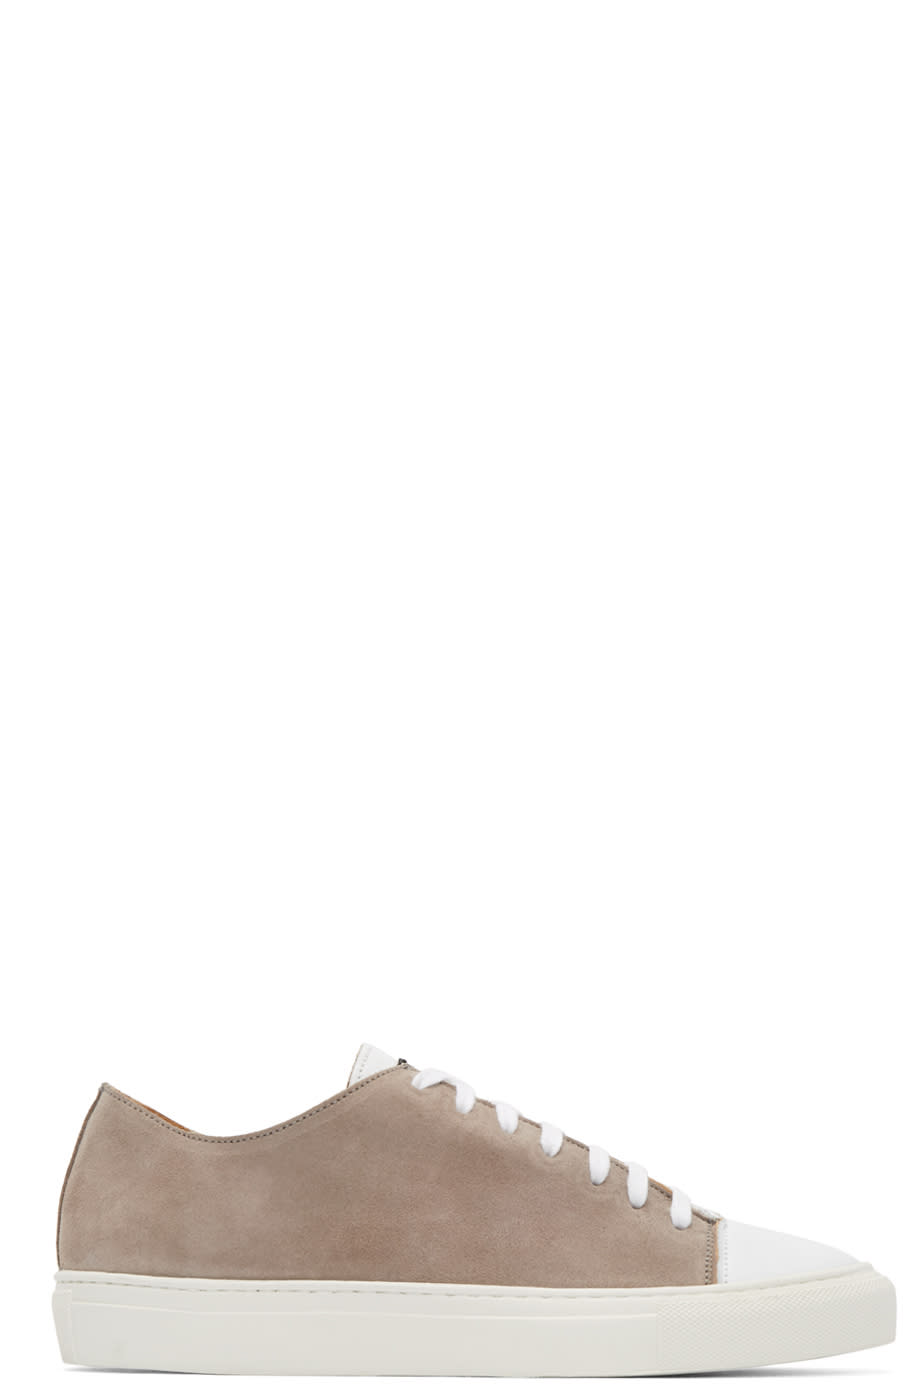 Damir Doma Taupe Suede Fulcia Sneakers